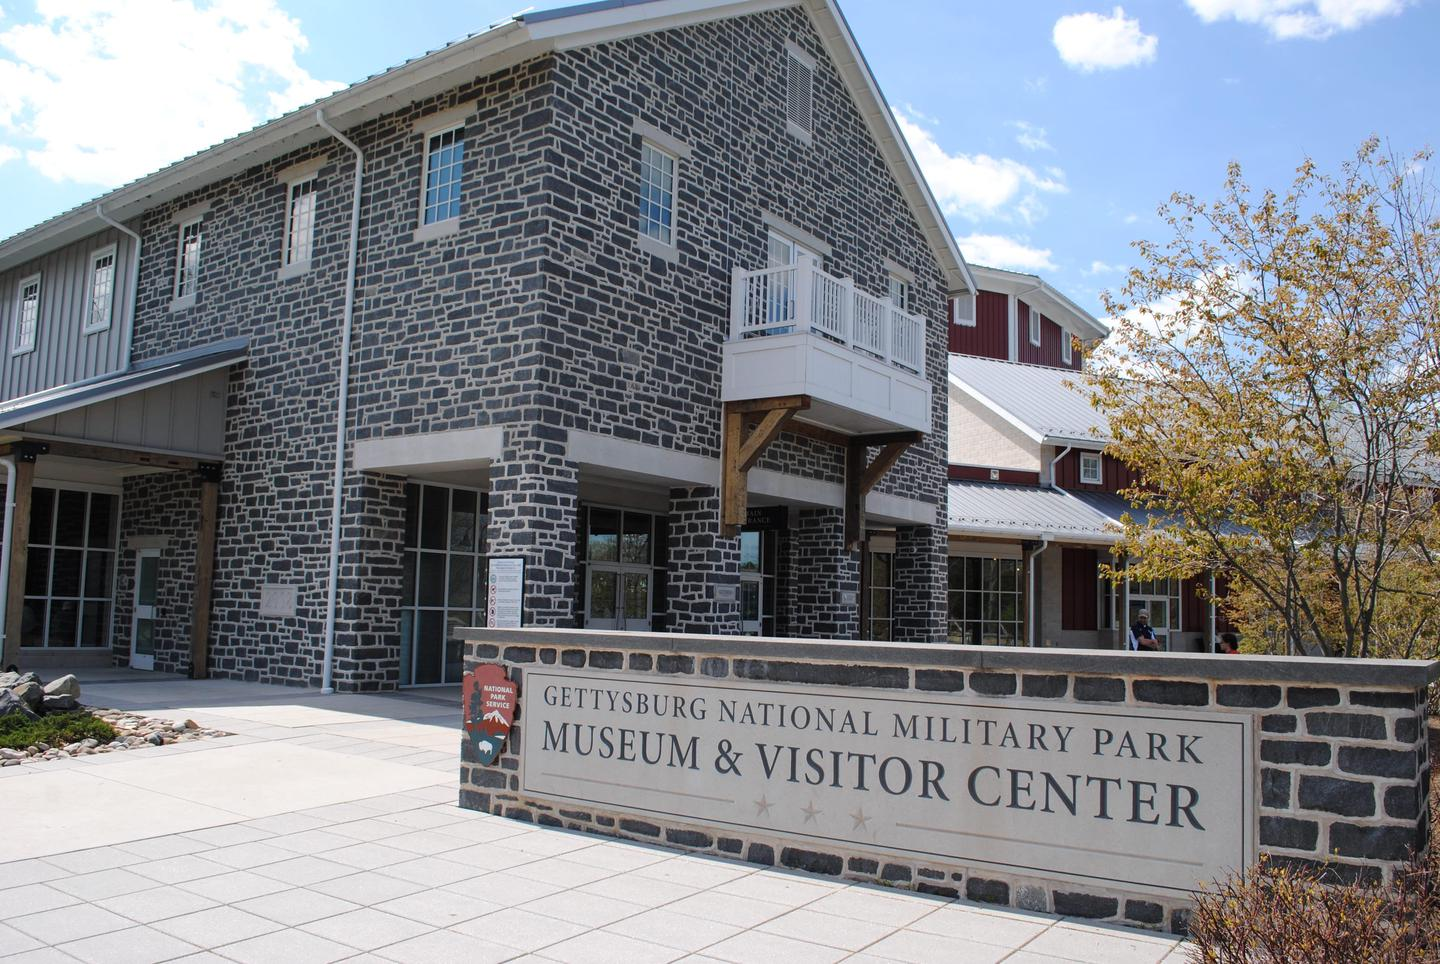 Gettysburg National Military Park Museum and Visitor CenterStart your visit to Gettysburg National Military Park at the Museum and Visitor Center,